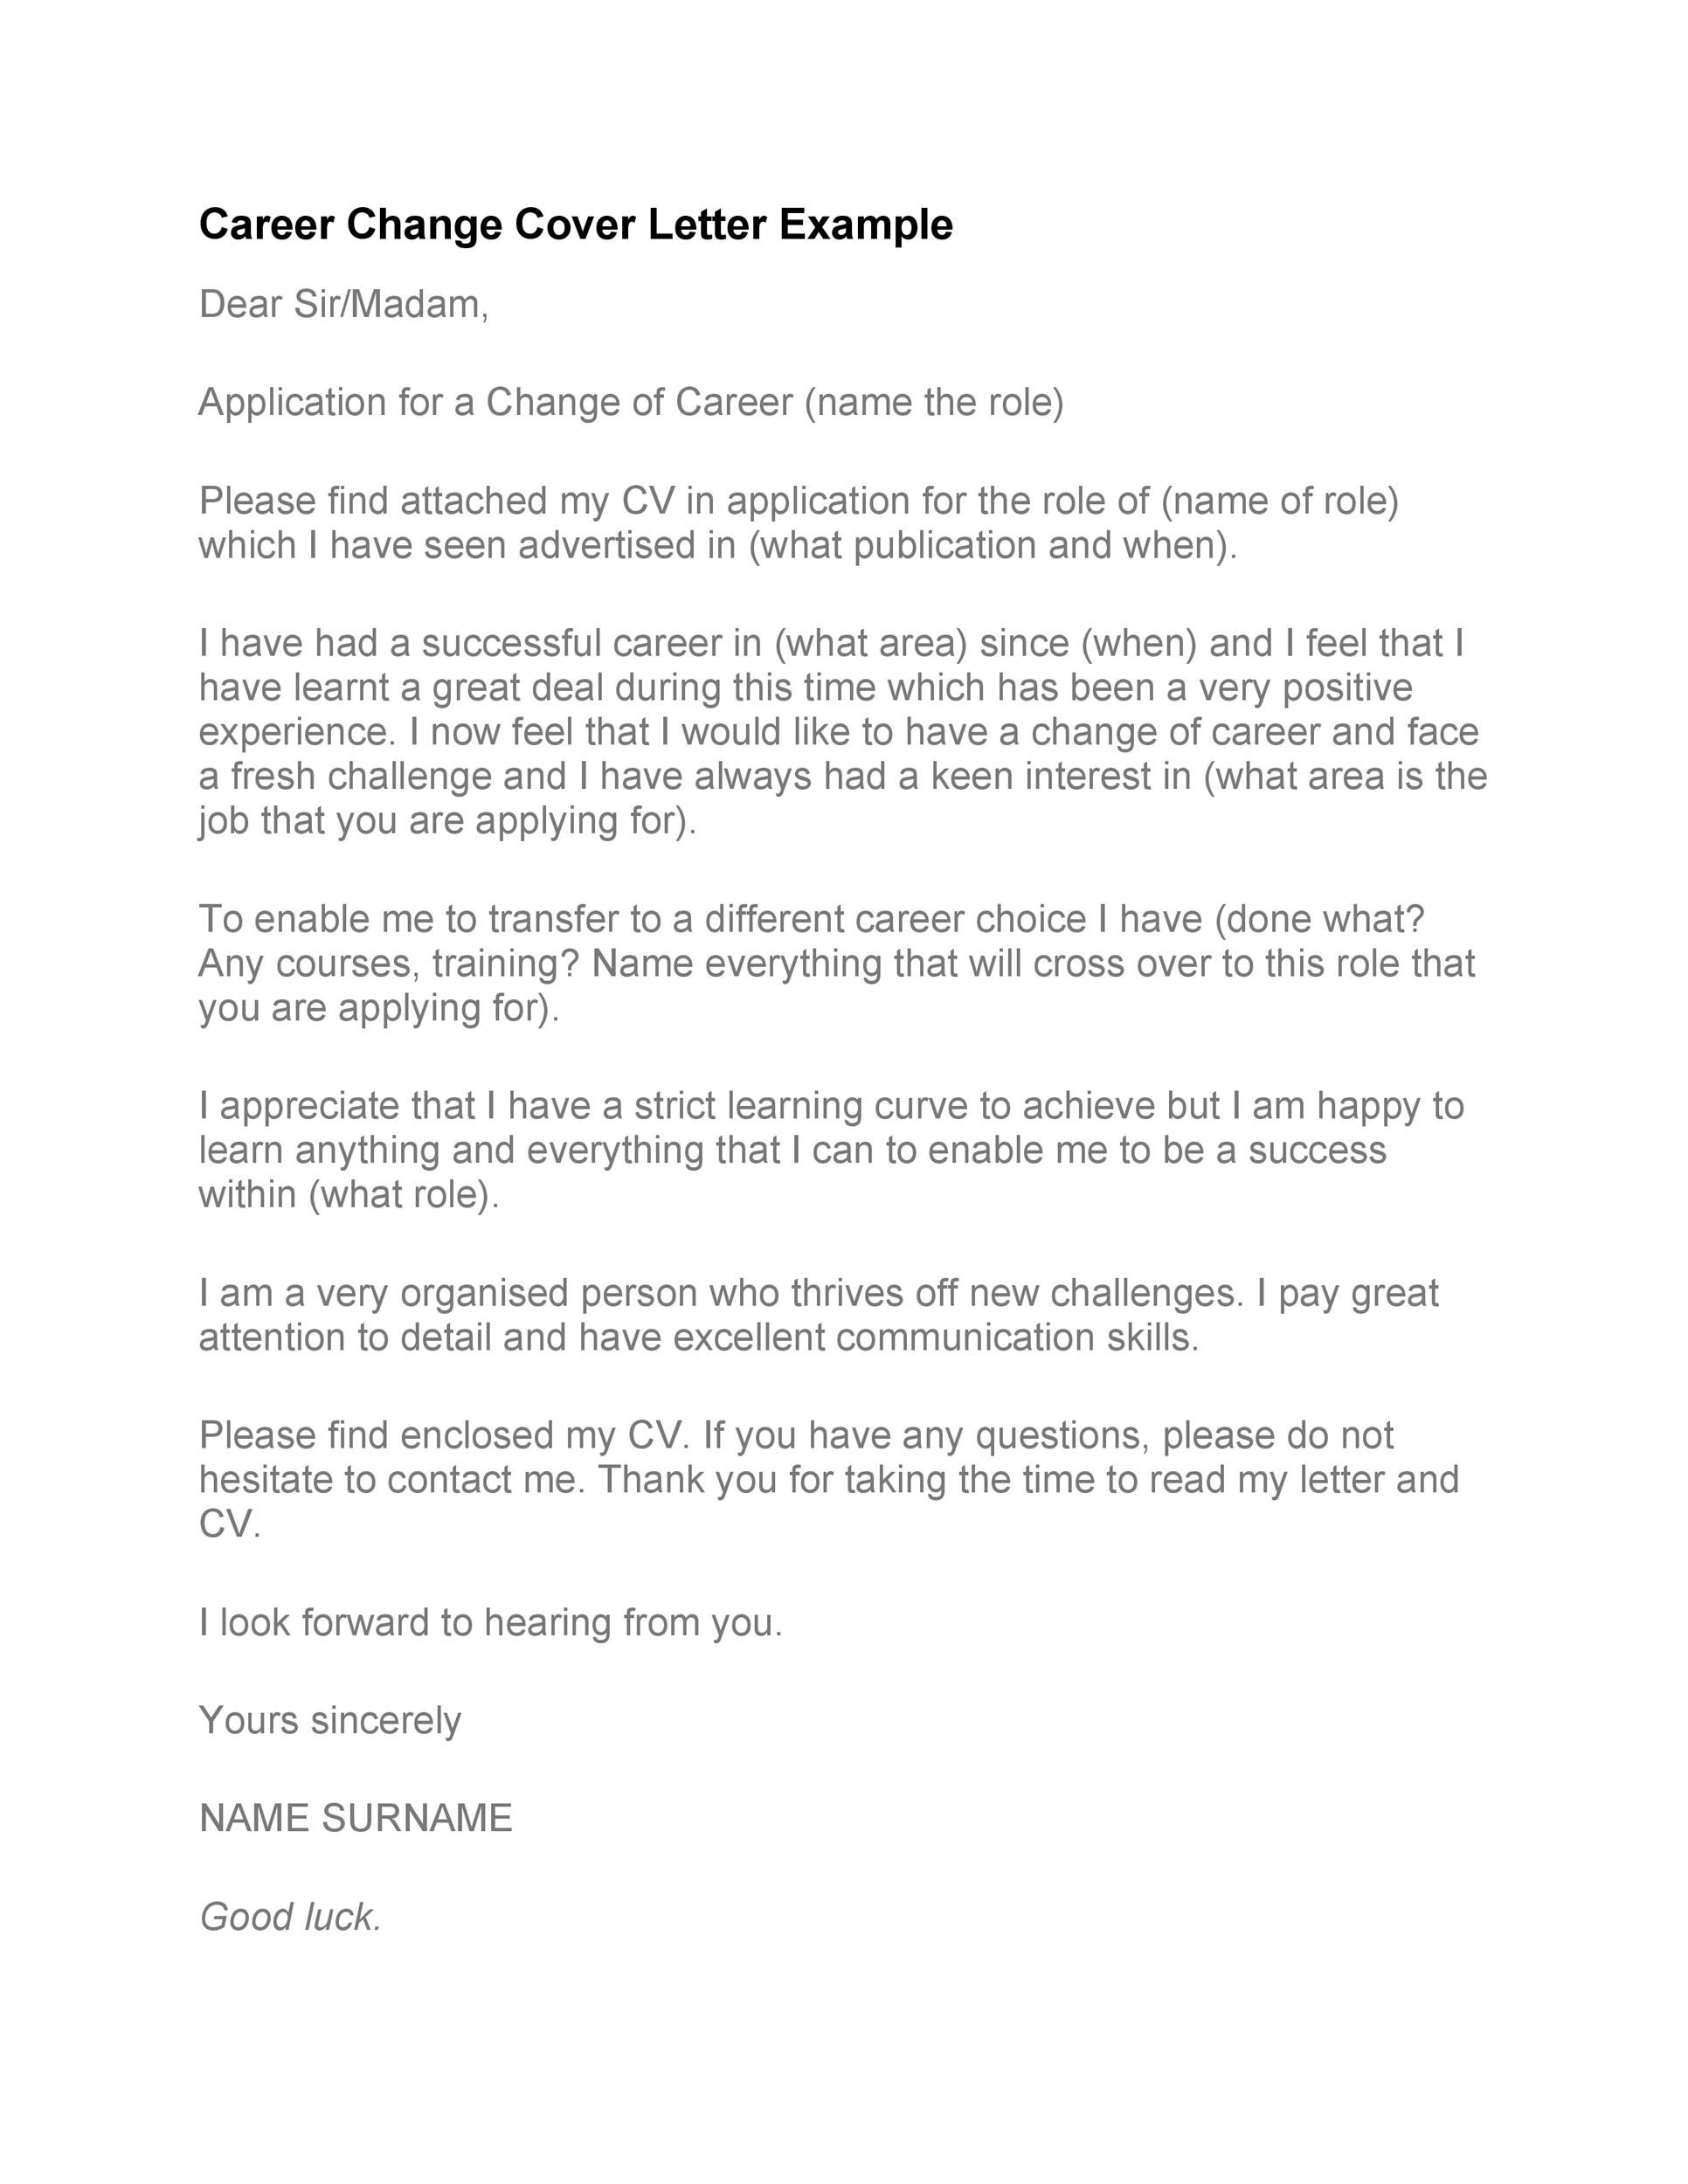 Free career change cover letter 14